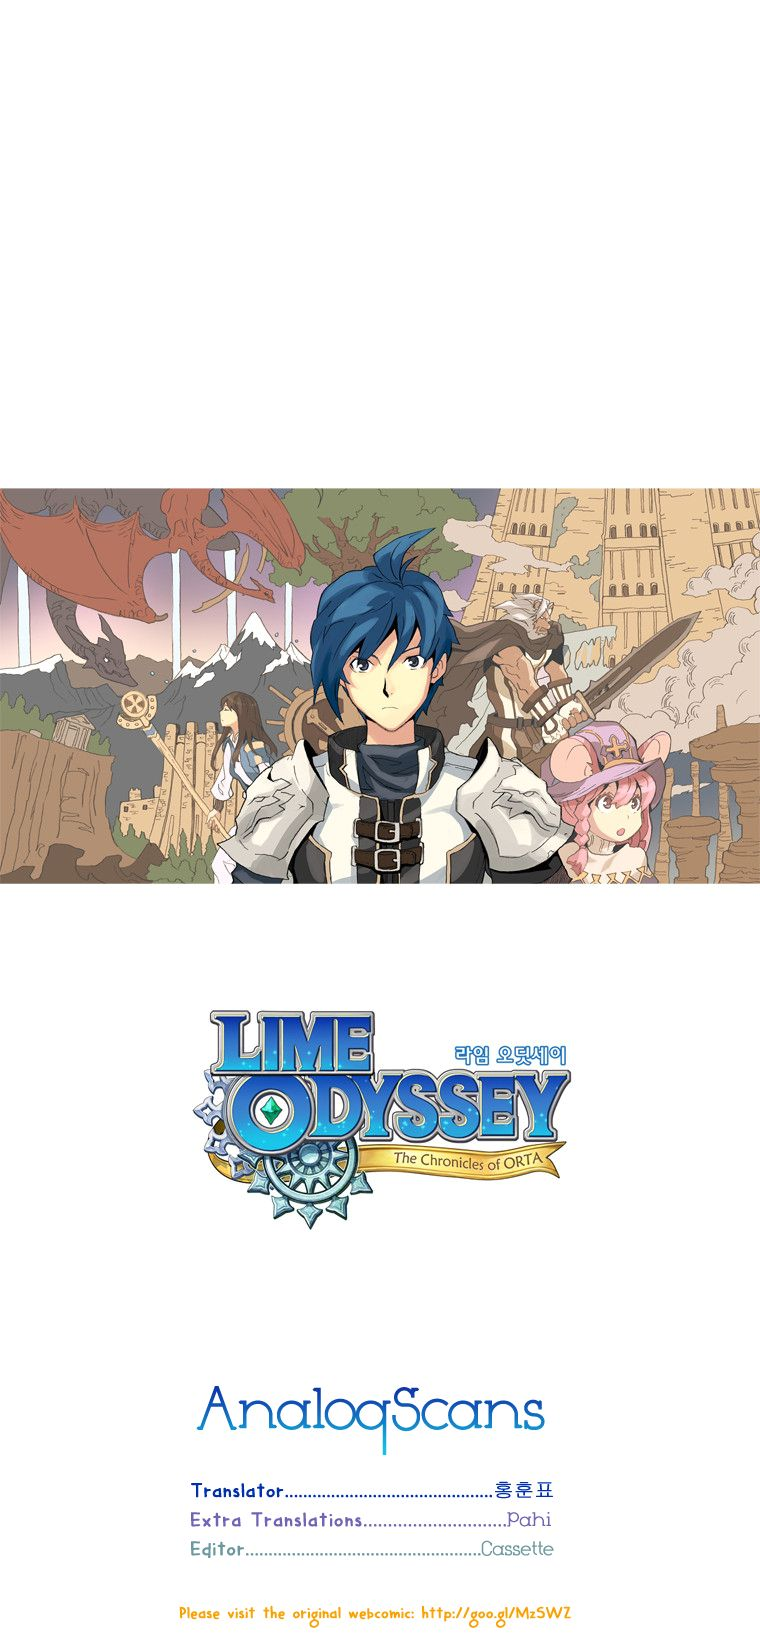 Lime Odyssey: The Chronicles of ORTA 0 Page 4